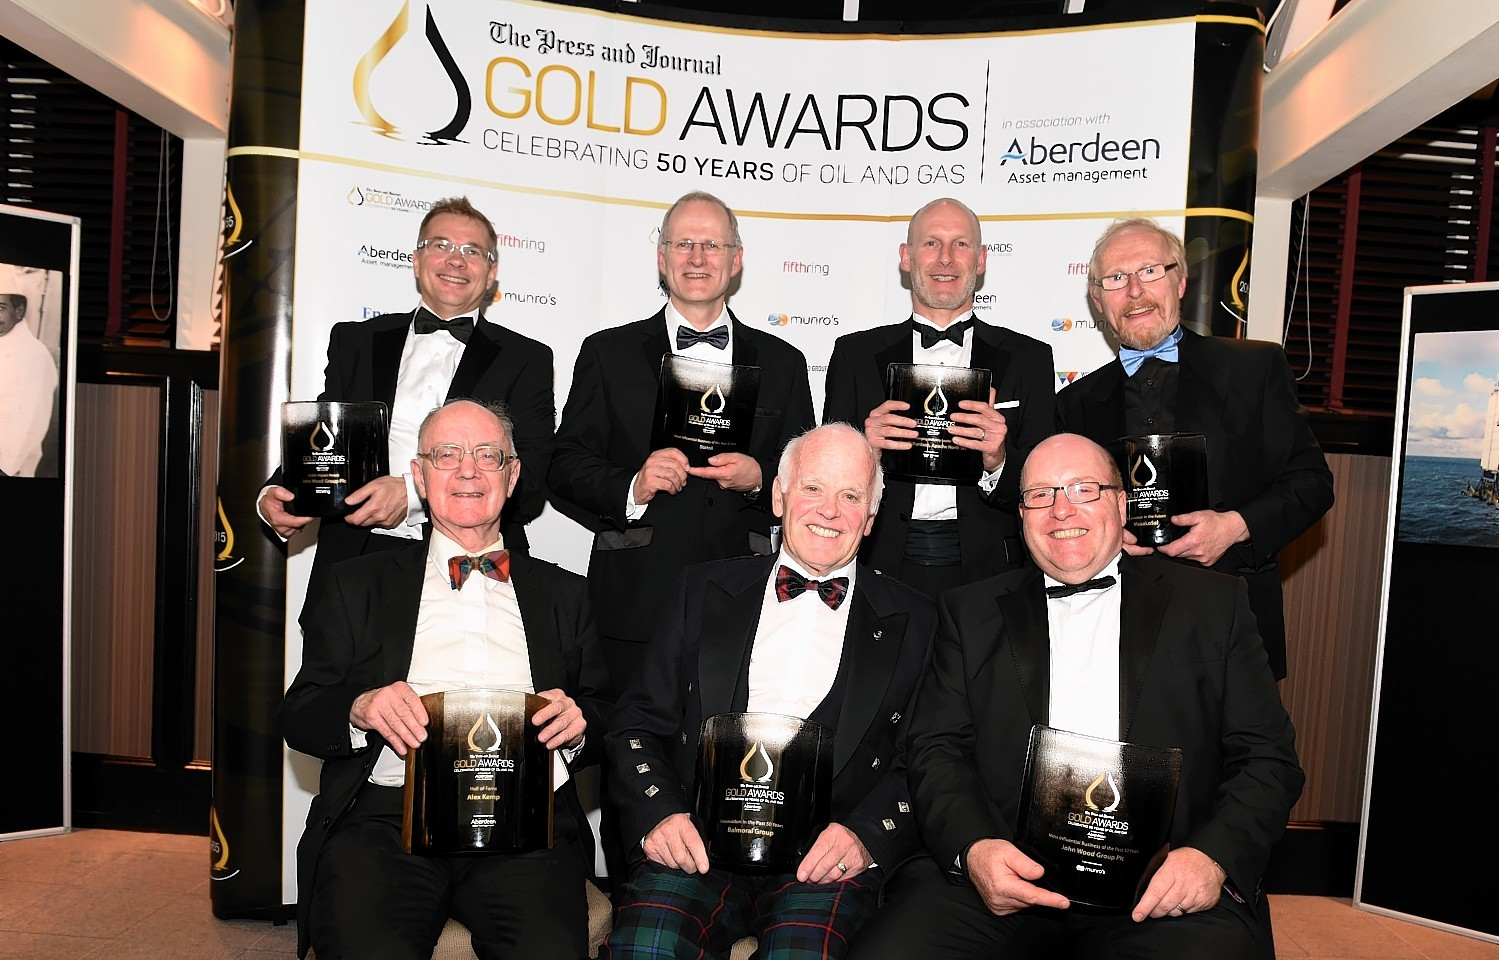 The winners at the Press and Journal Gold Awards